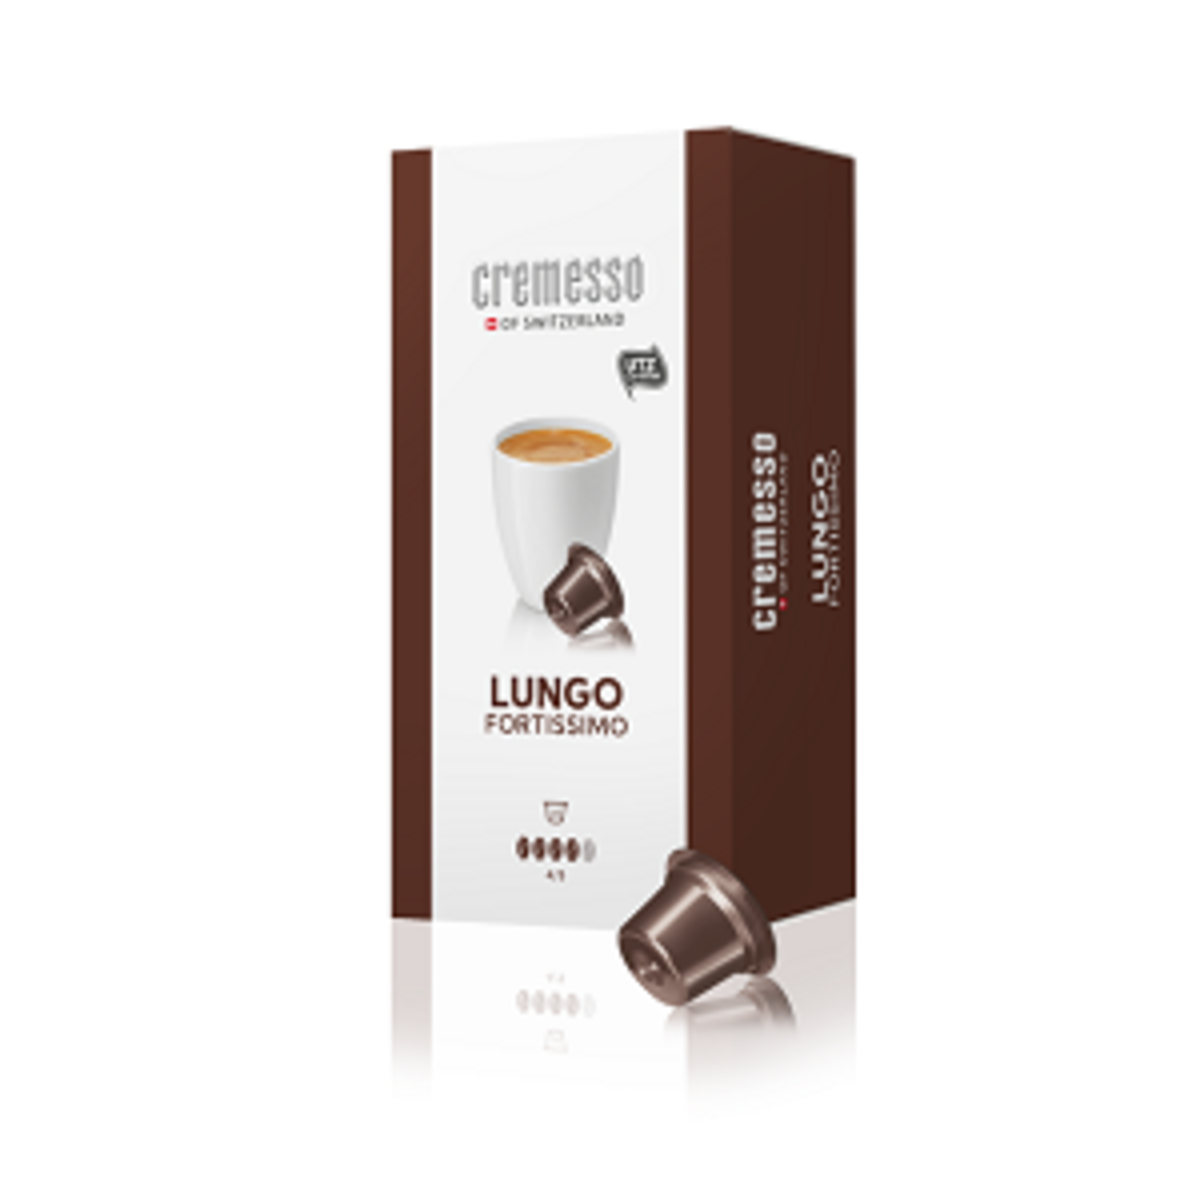 Cremesso Lungo Fortissimo 16бр капсули